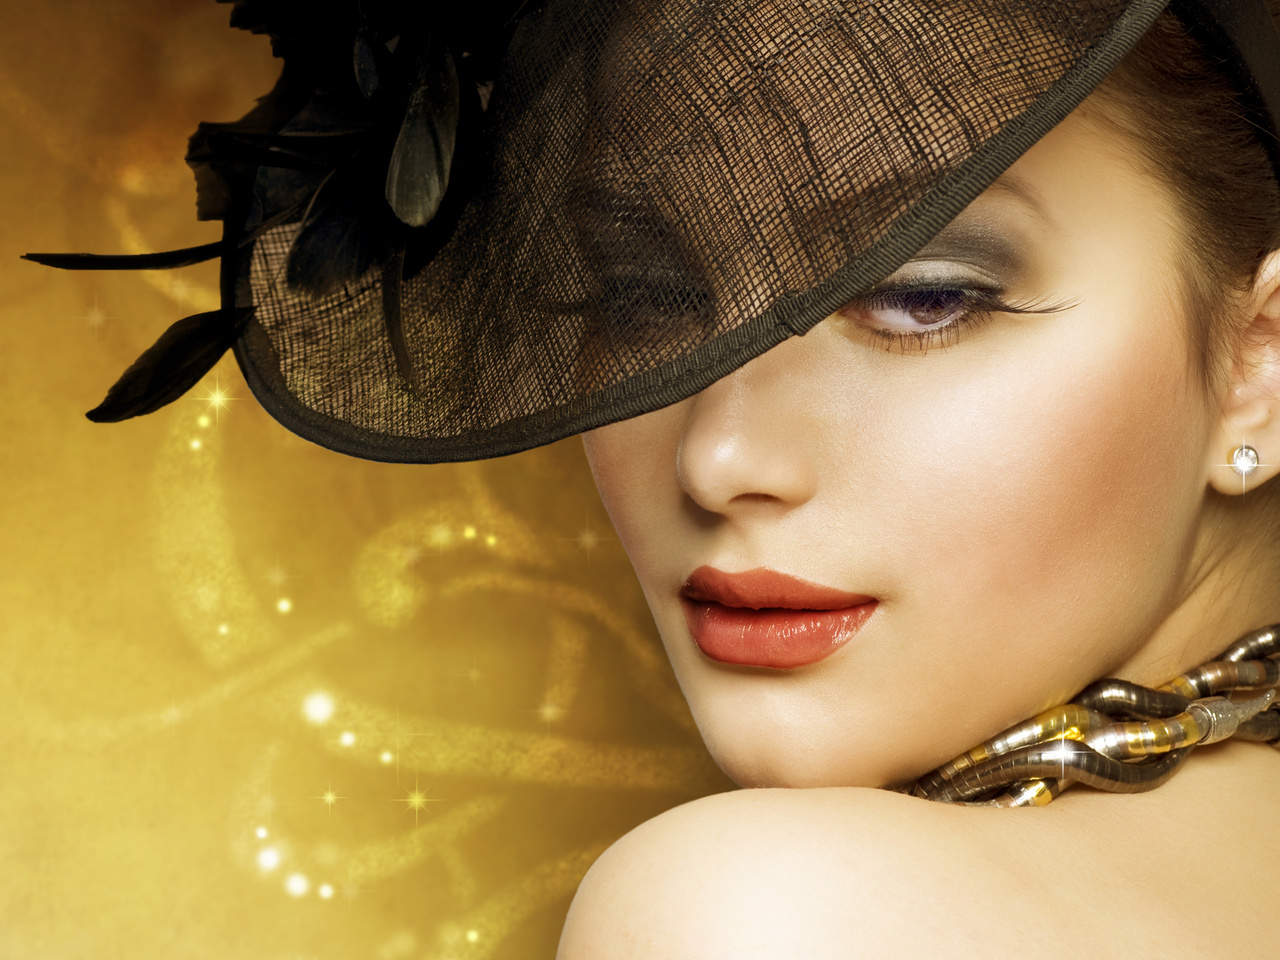 and Download 2013 hd Beautiful Girls Wallpapers r Desktop Backgrounds 1280x960